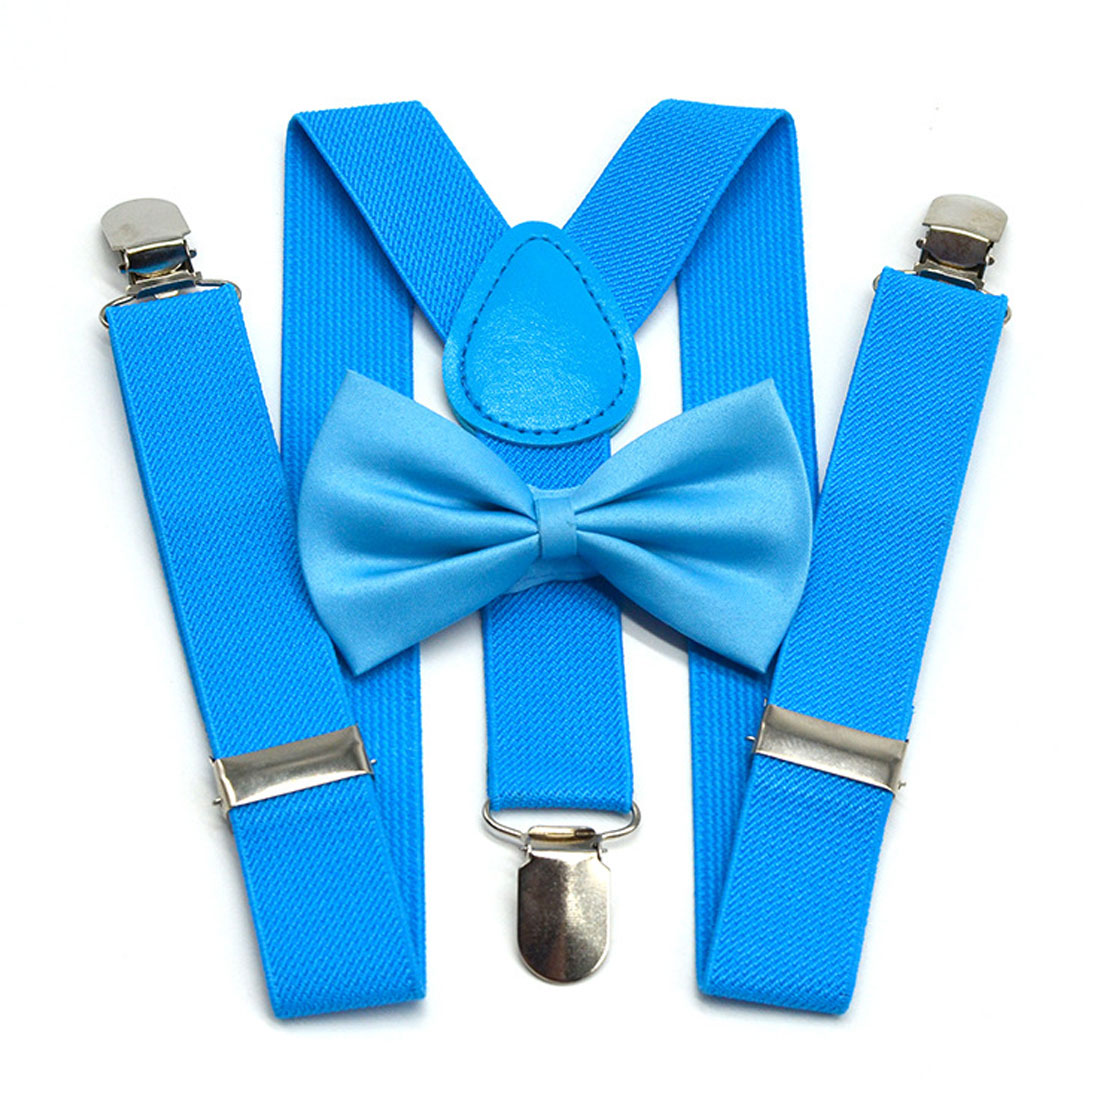 Children Belt Cool  Bow Tie Set Baby Boys Girls Suspenders Clip-on Y-Back Braces Bow Tie Elastic Kids Adjustable